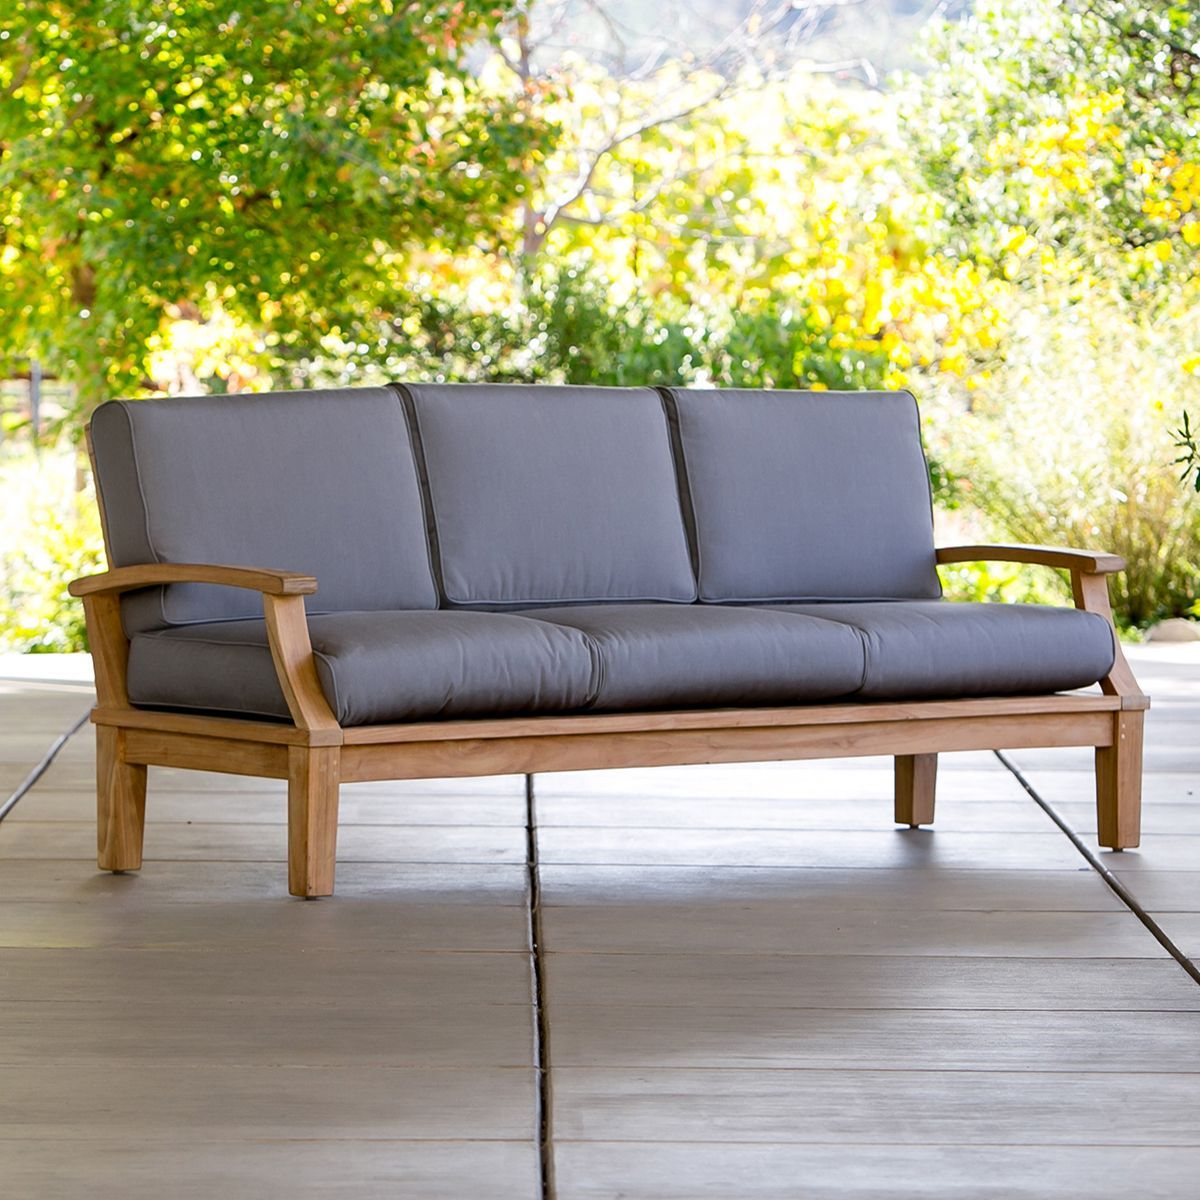 sofas for sale an outdoor sofa turns a patio into a parlor modern